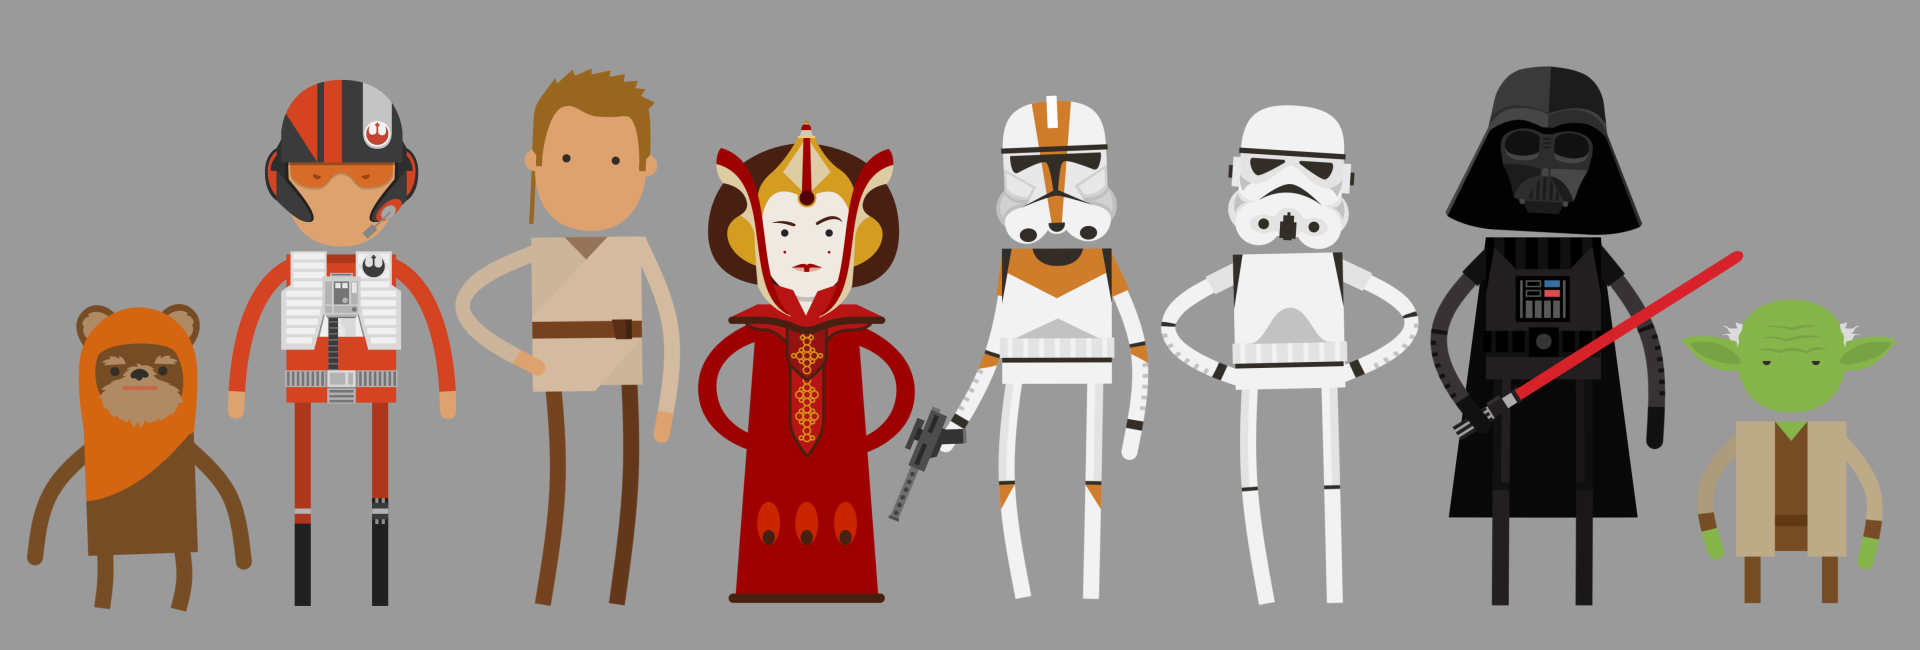 STARWARS-CHARACTERS-003.png